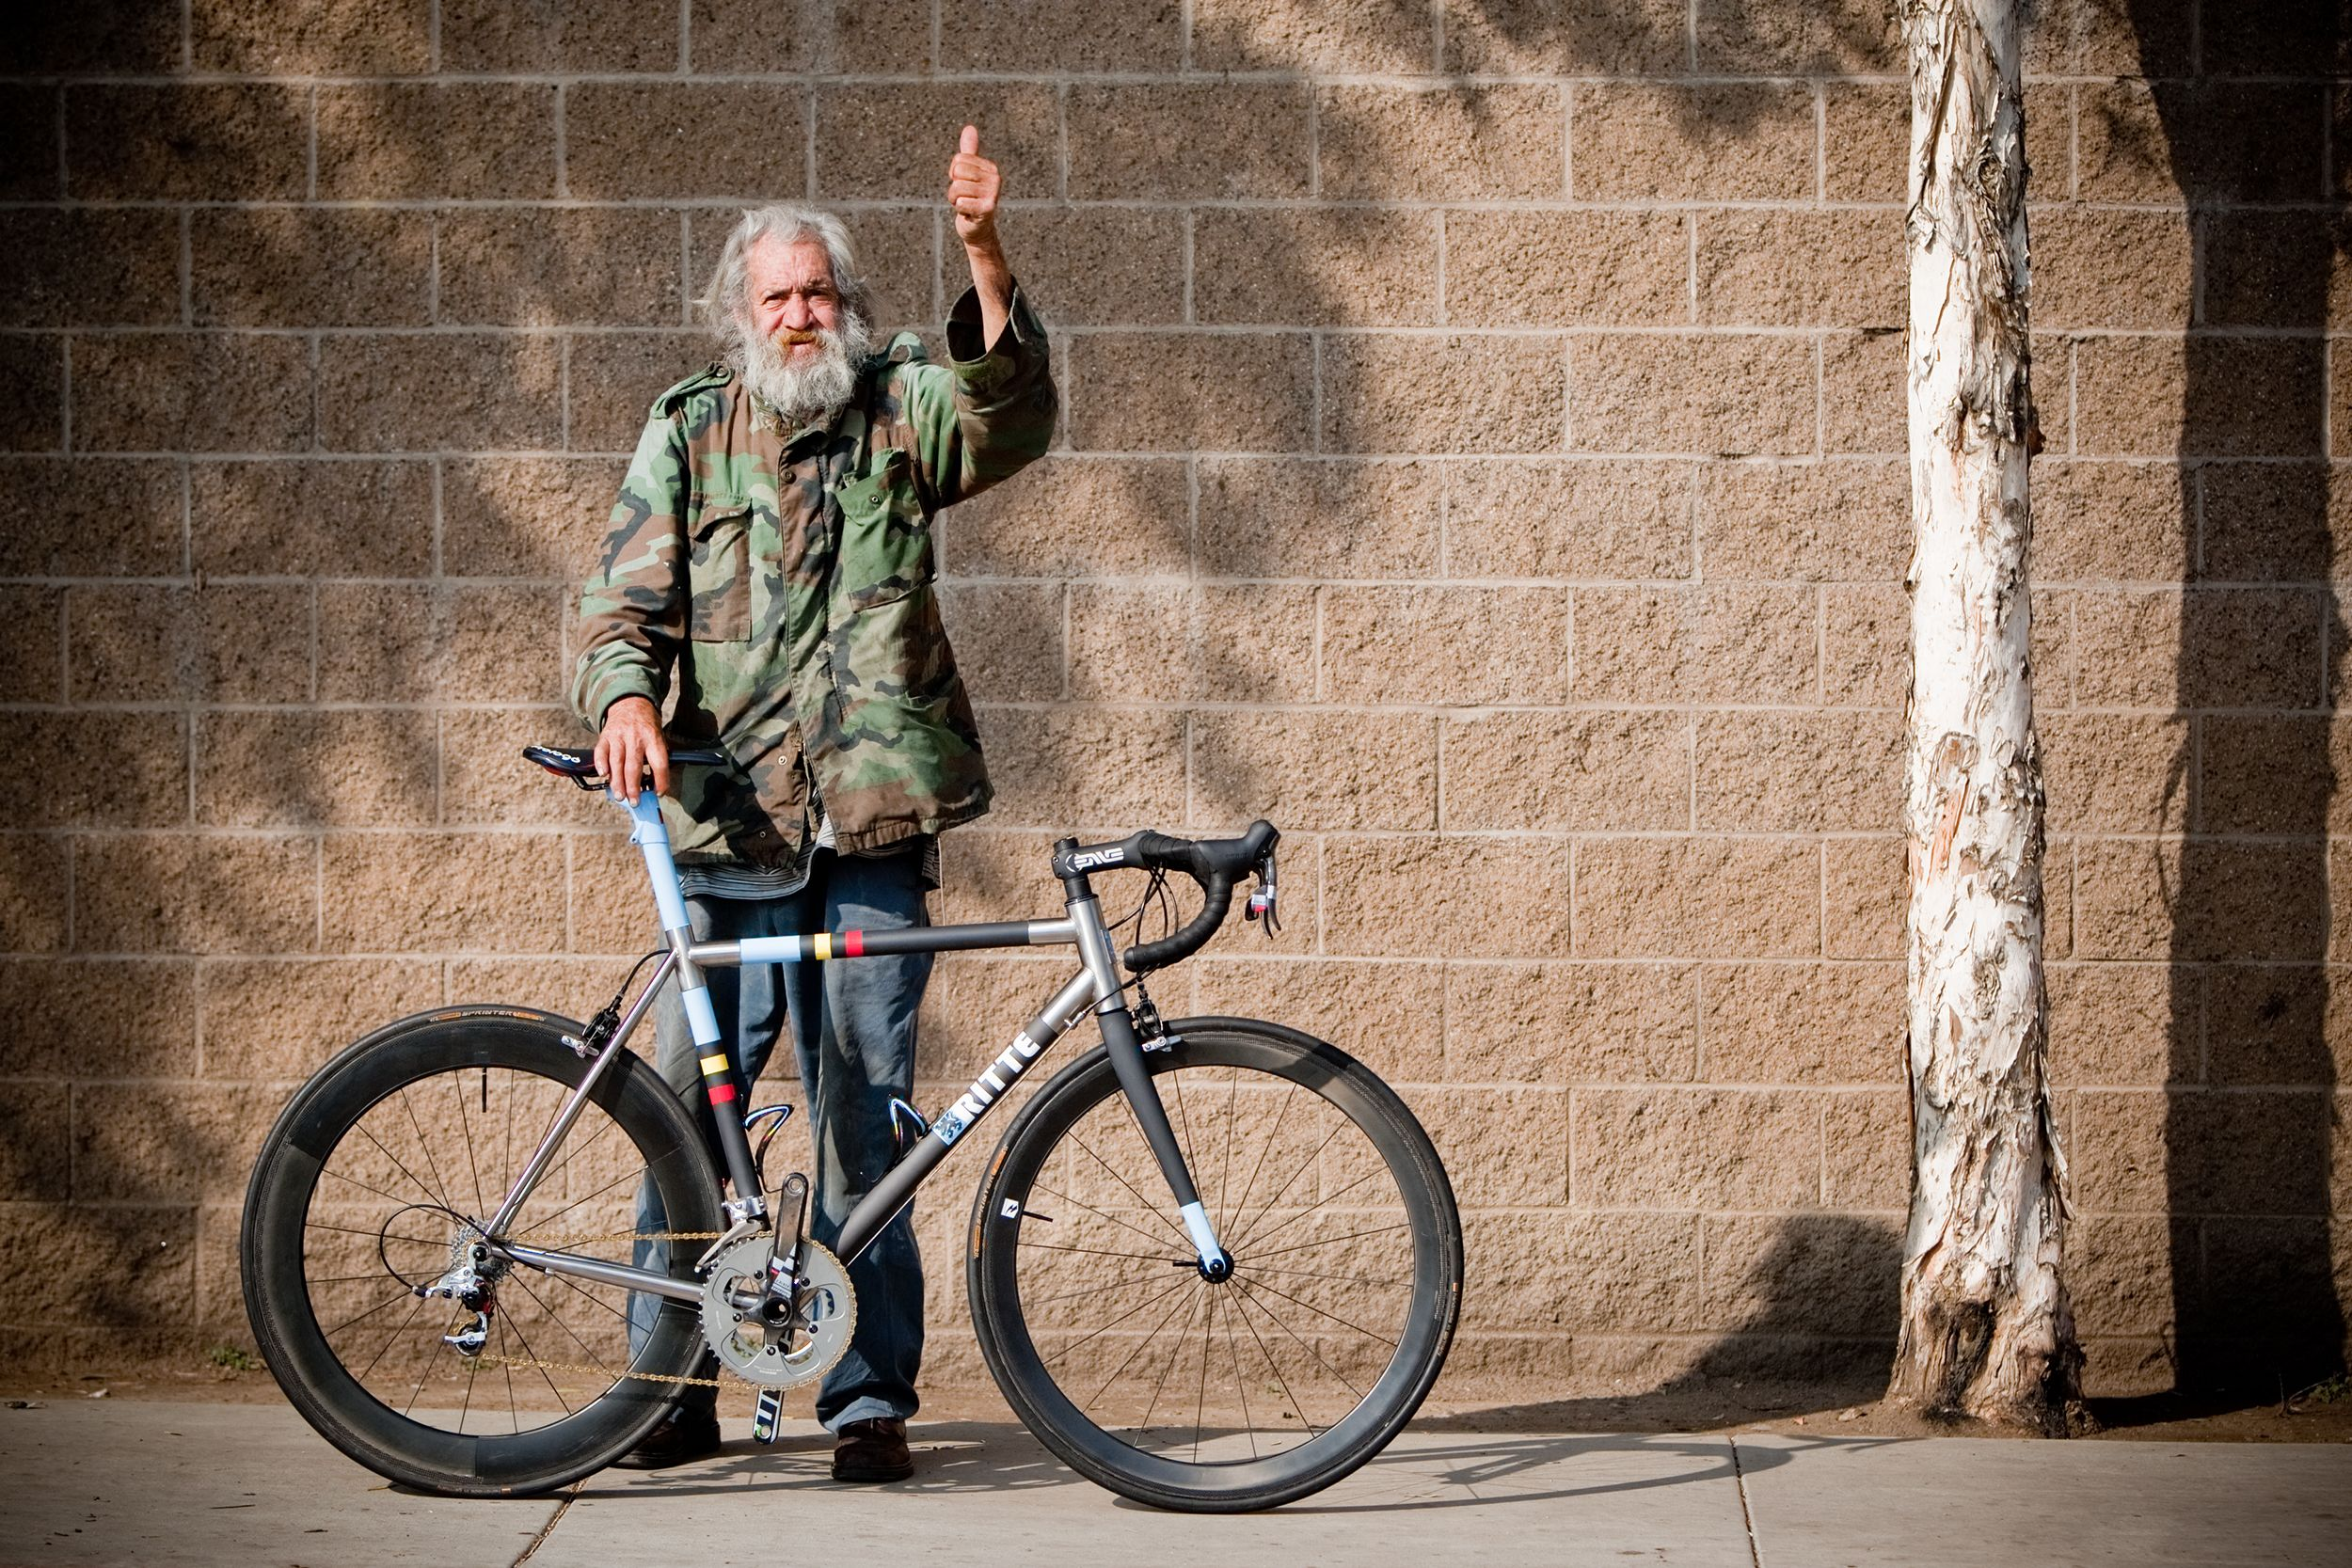 Ritte Bicycles Hobo Bike! Great picture as always from Ritte!